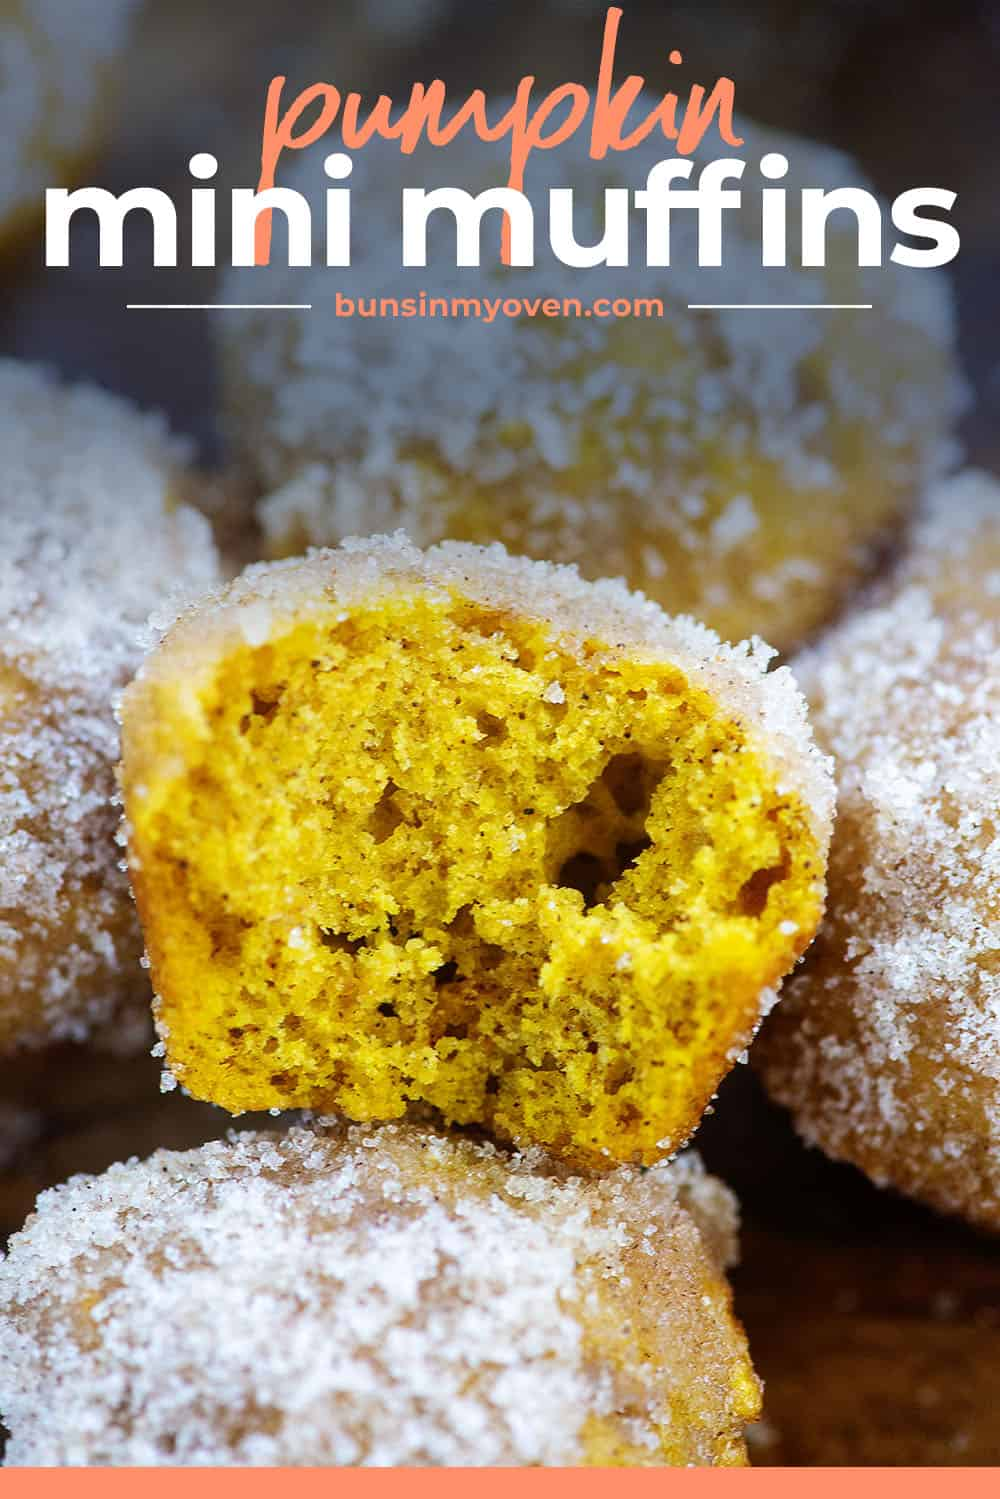 pumpkin mini muffins with text for Pinterest.